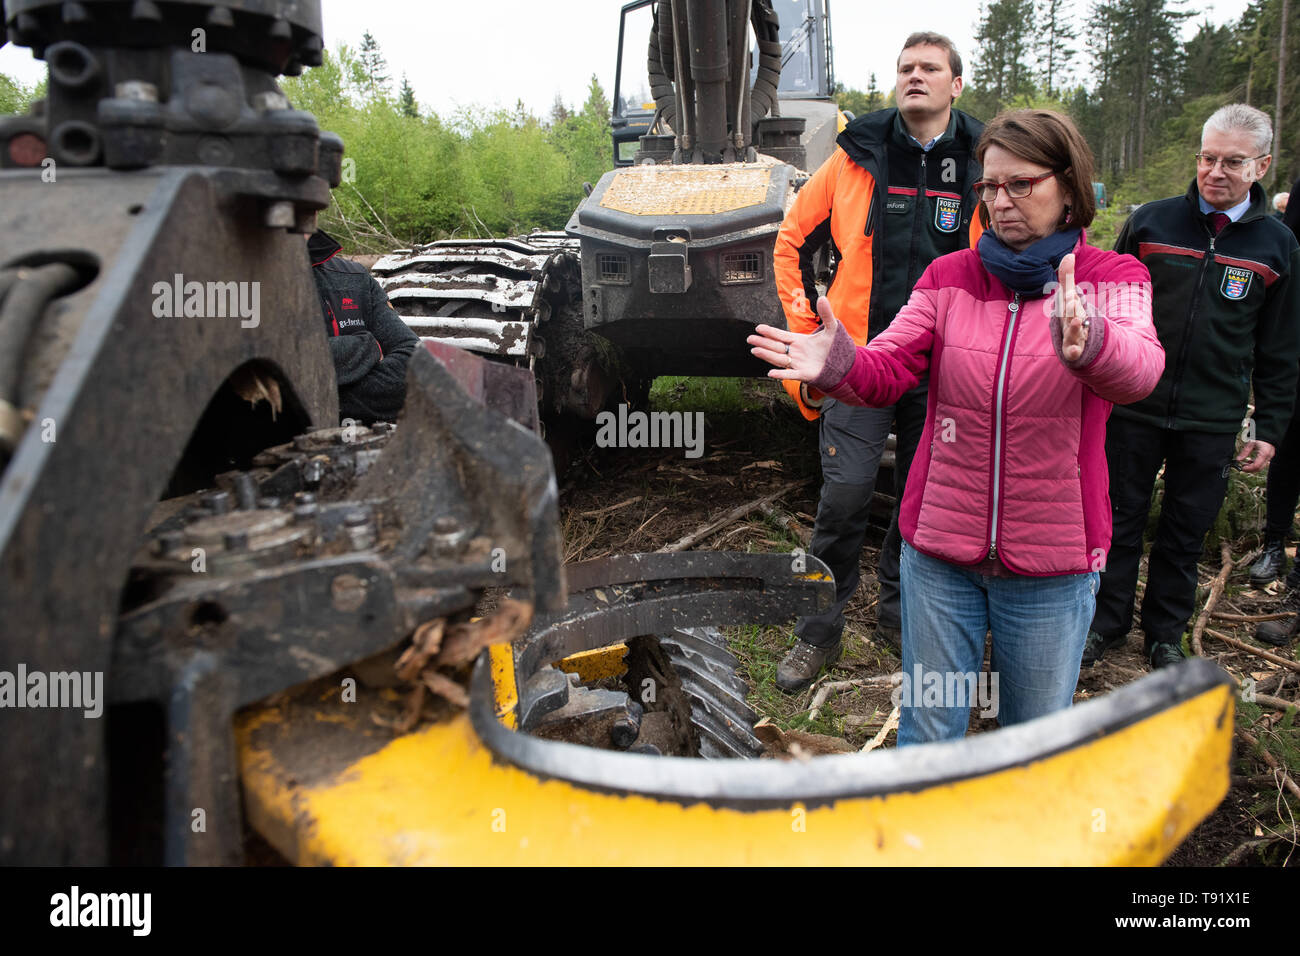 Sankt Ottilien, Germany. 16th May, 2019. Priska Hinz (Bündnis 90/Die Grünen), Minister of the Environment of Hesse, stands in front of the debarking head of a harvester (wood harvester) during a visit to a forest area in the Söhrewald which has been severely affected by the windthrow. After the drought of 2018, trees are weakened and susceptible to bark beetle infestation. Credit: Swen Pförtner/dpa/Alamy Live News Stock Photo